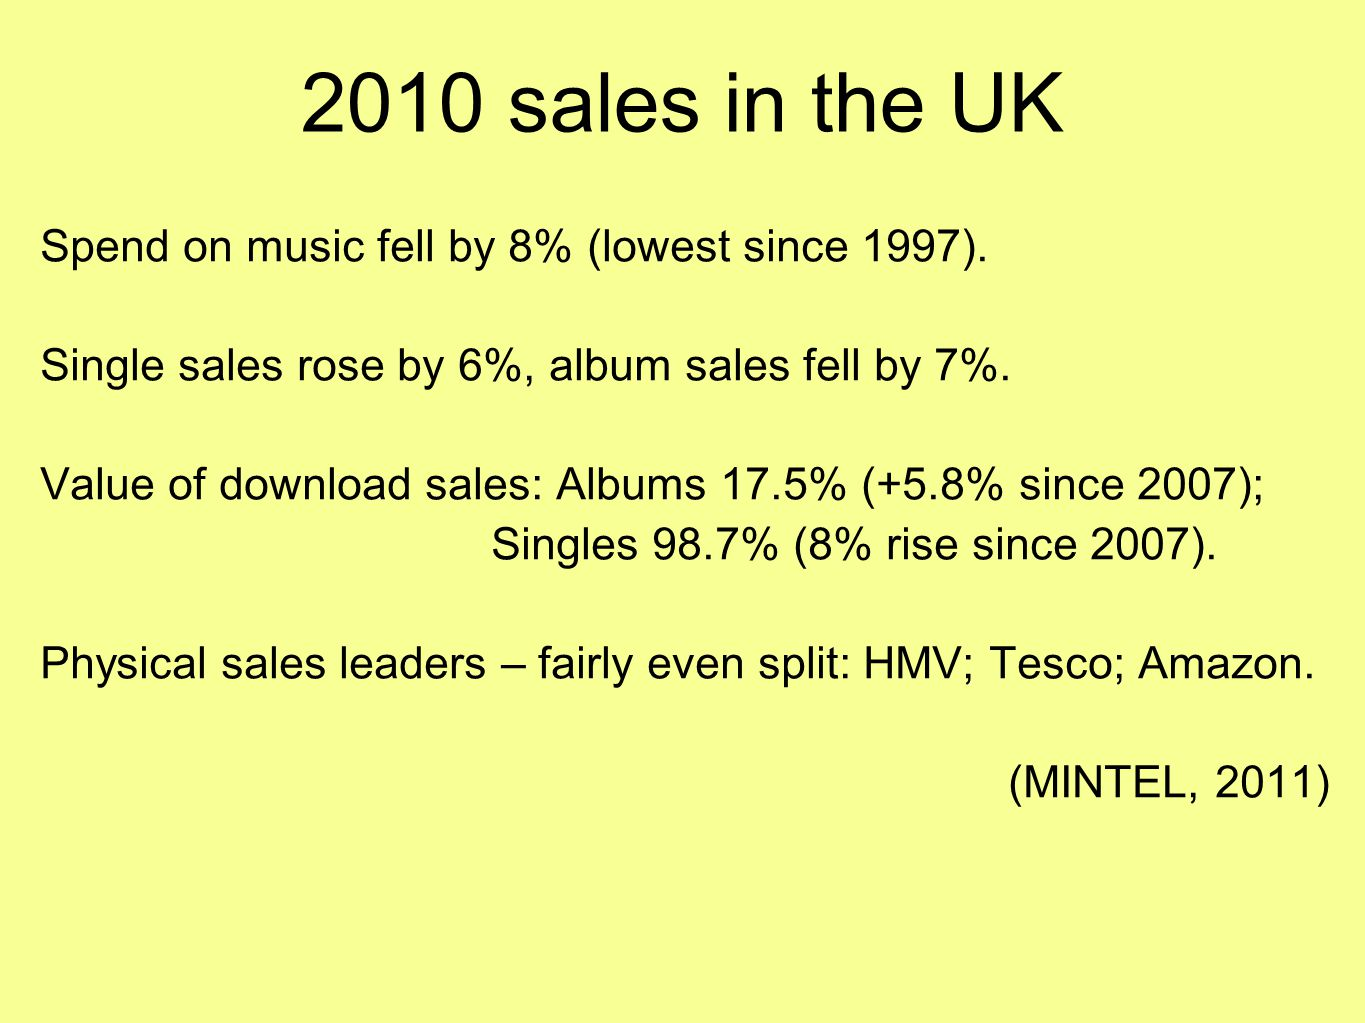 BPI (2010b) Some facts about UK downloading 152,700,000 - sales of singles in 2009, 98% of which were digital 500,000,000 - digital singles sold to date in UK by Sept 2010 50,000,000 - digital albums sold to date in UK by Sept 2010 1,200,000,000 - single music tracks illegally downloaded in 2010 from unauthorised sources £280.5m - retail value of digital music market in 2009, 20% of overall £1.4bn recorded music market £984,000,000 - retail value of single tracks downloaded in 2010 from unauthorised sources 82p – average retail price of single digital track